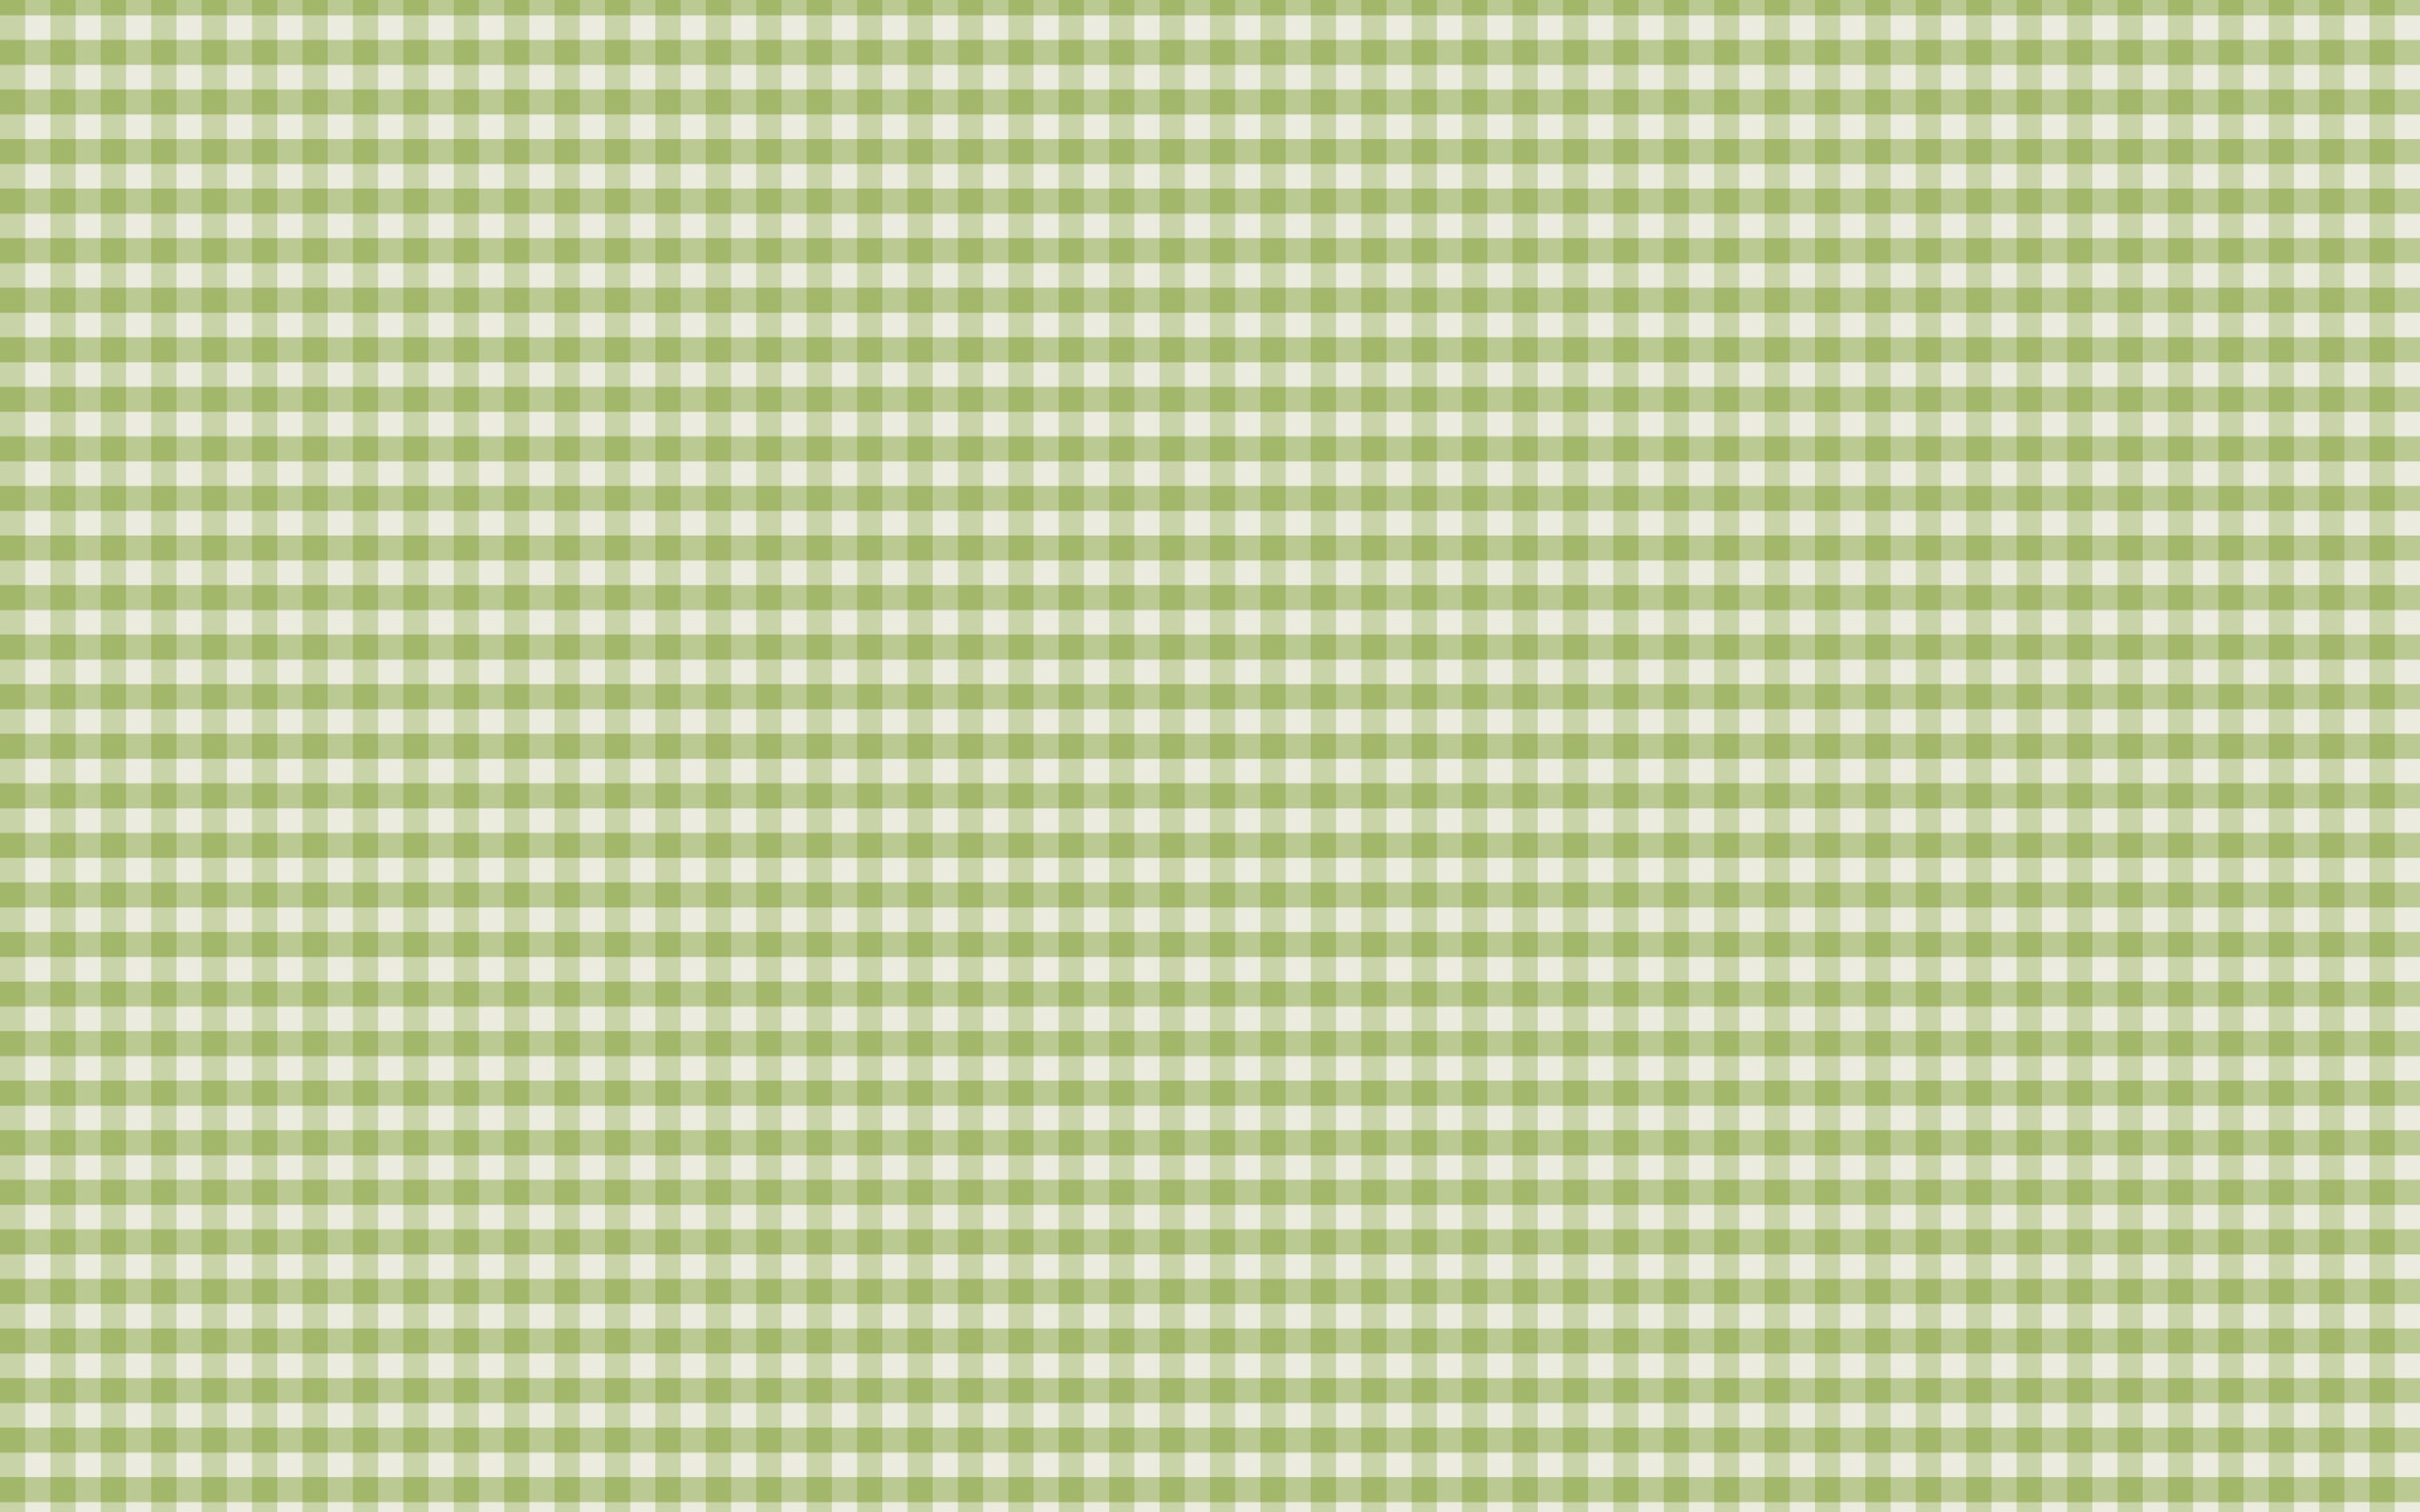 Green Plaid Wallpaper 23310